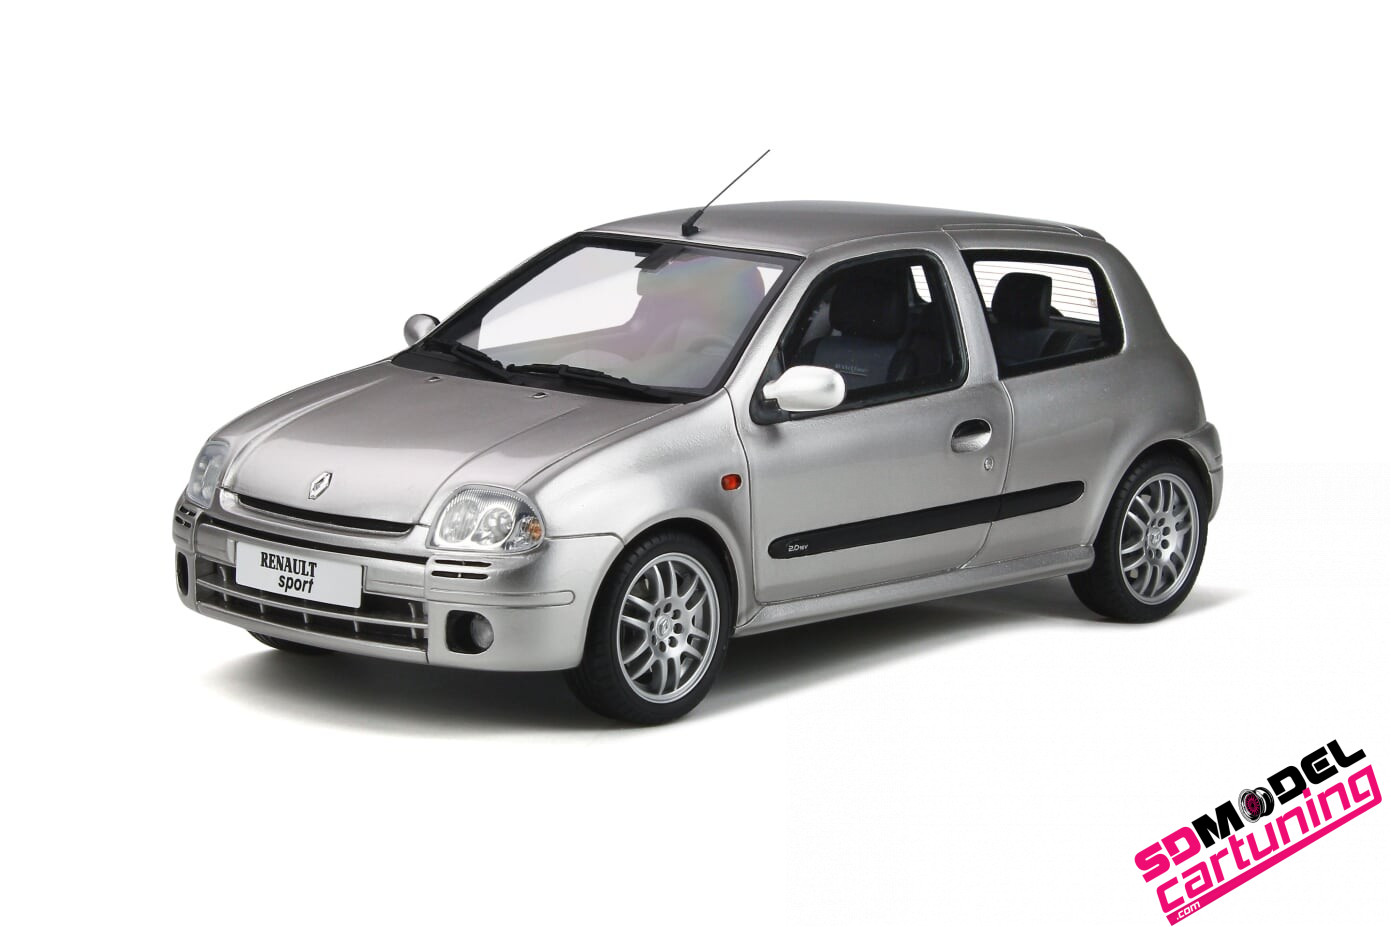 1:18 Renault Clio 2 RS Phase 1